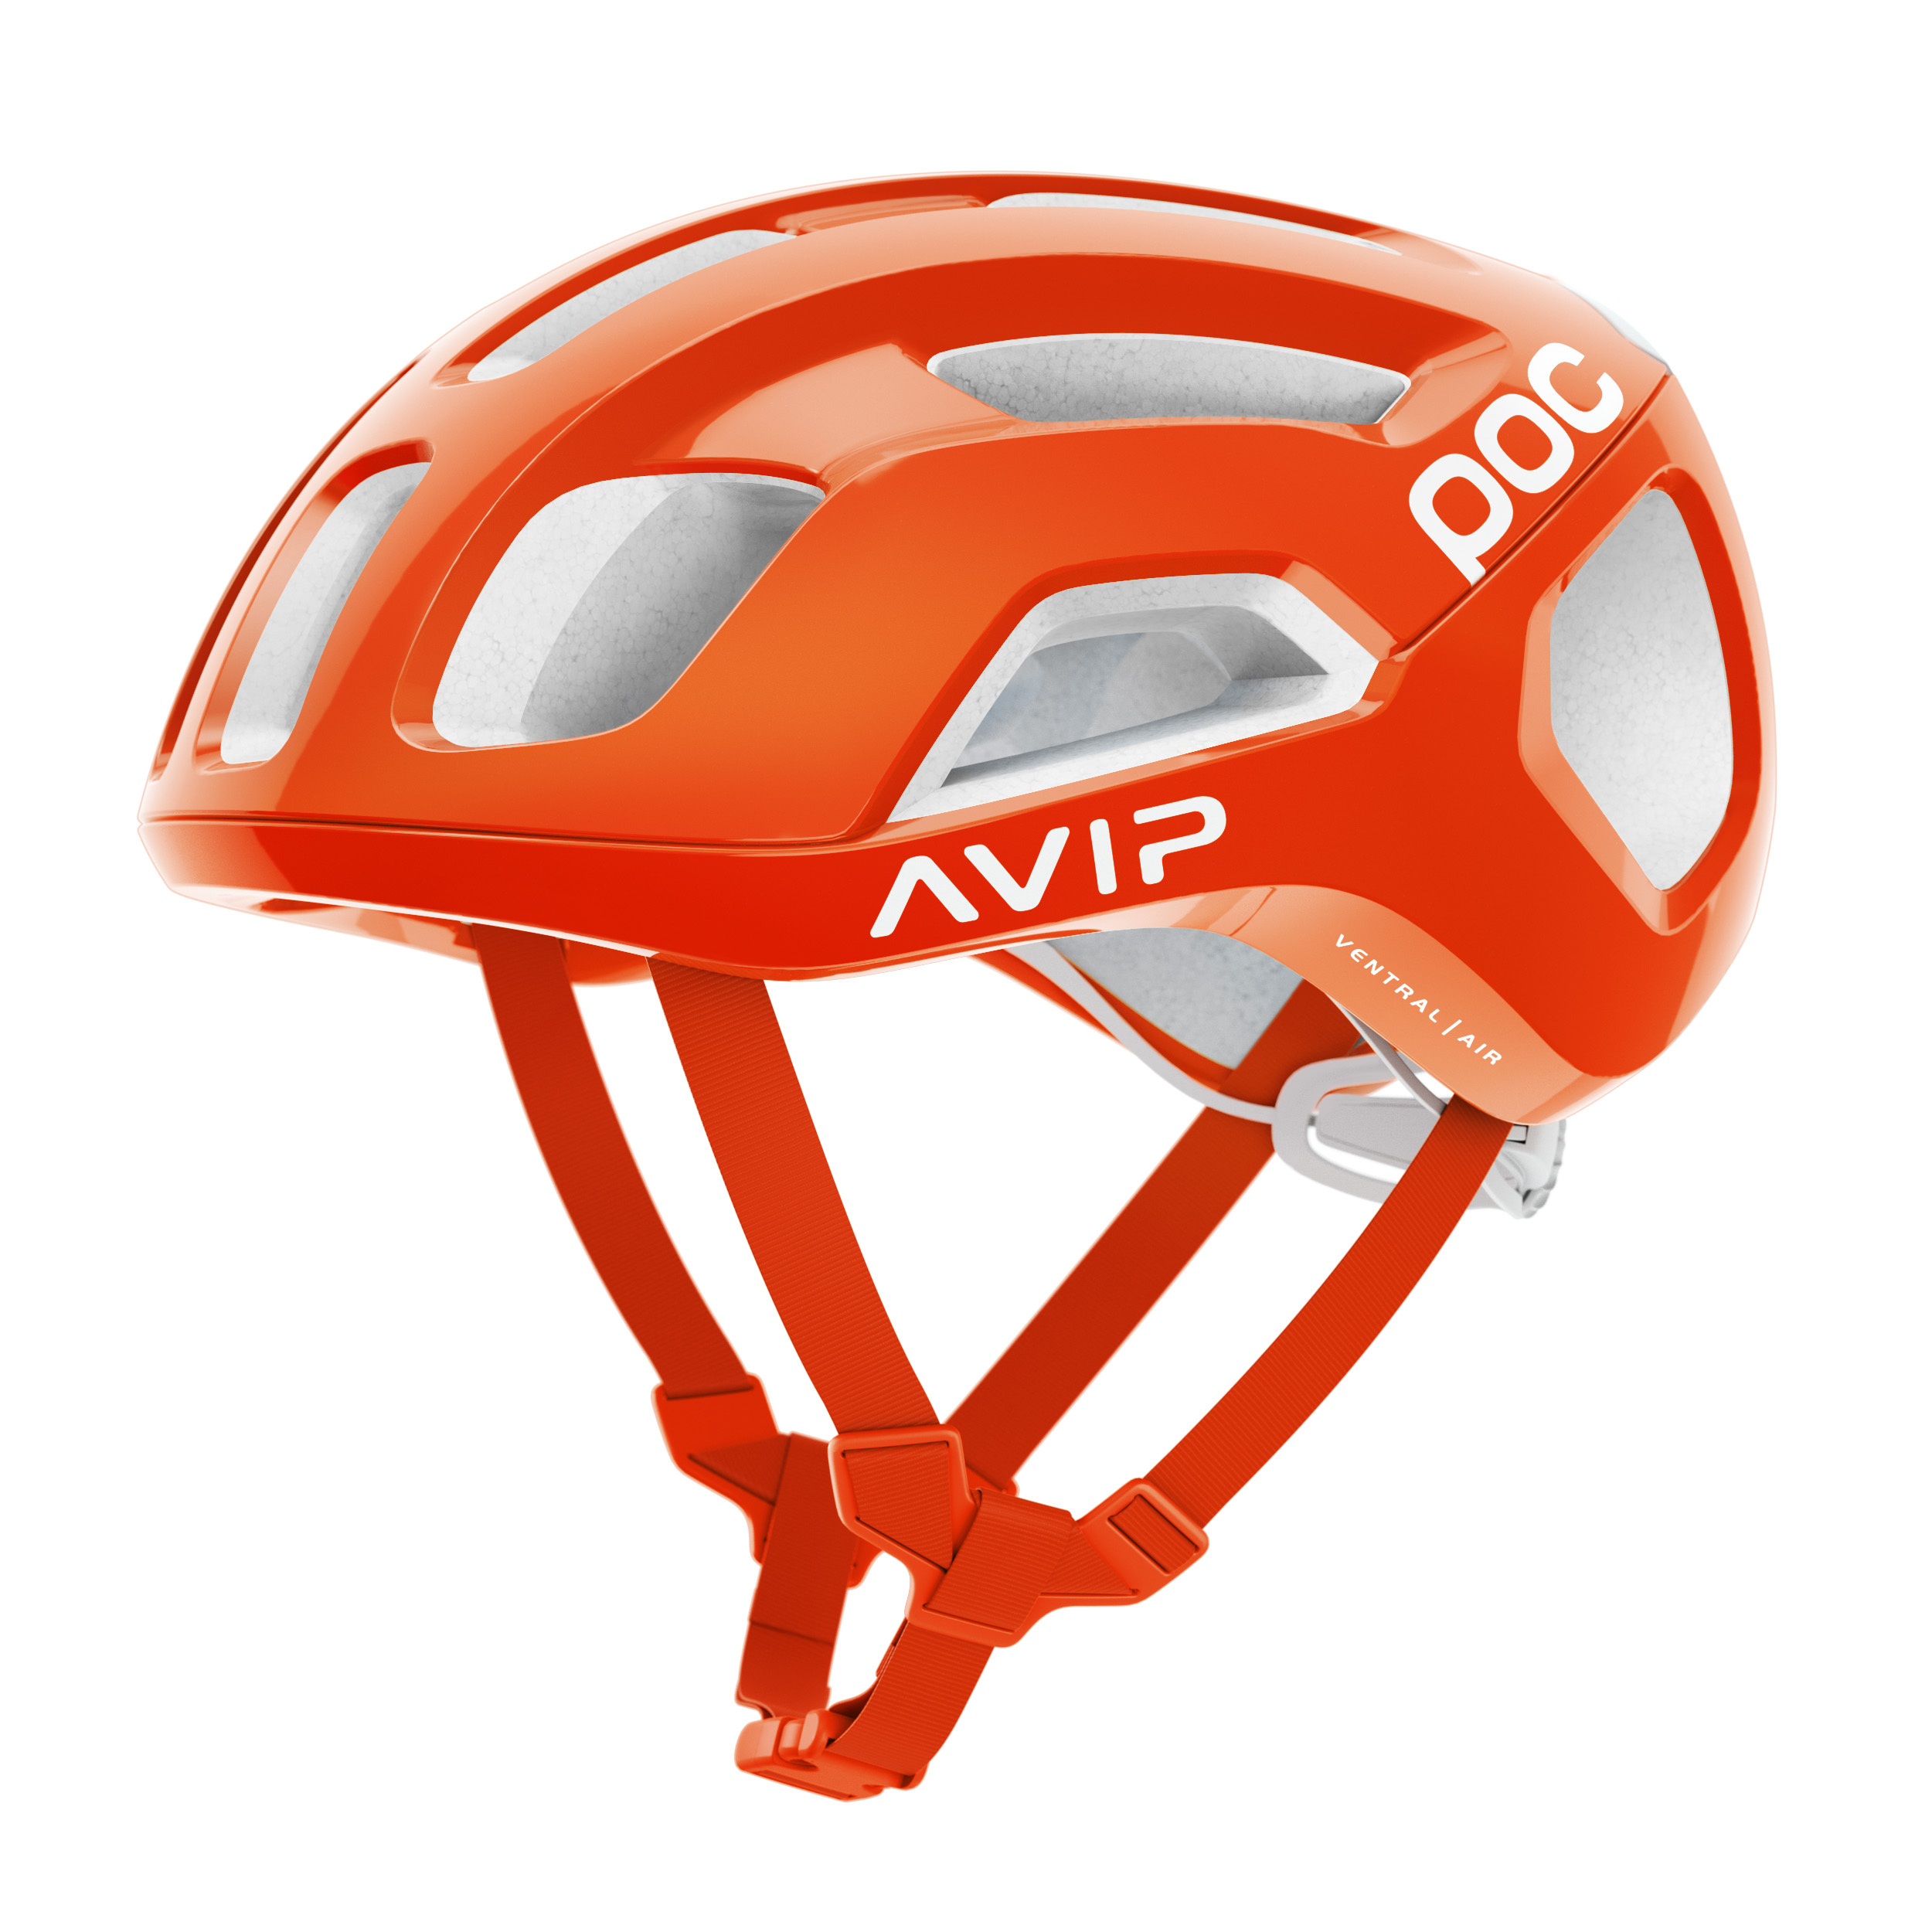 VENTRAL AIR SPIN - Winner of the coveted Design and Innovation Award 2019, the Ventral Air SPIN works to enhance a rider's aerodynamic profile. Specific airflow zones enhance ventilation and cooling.